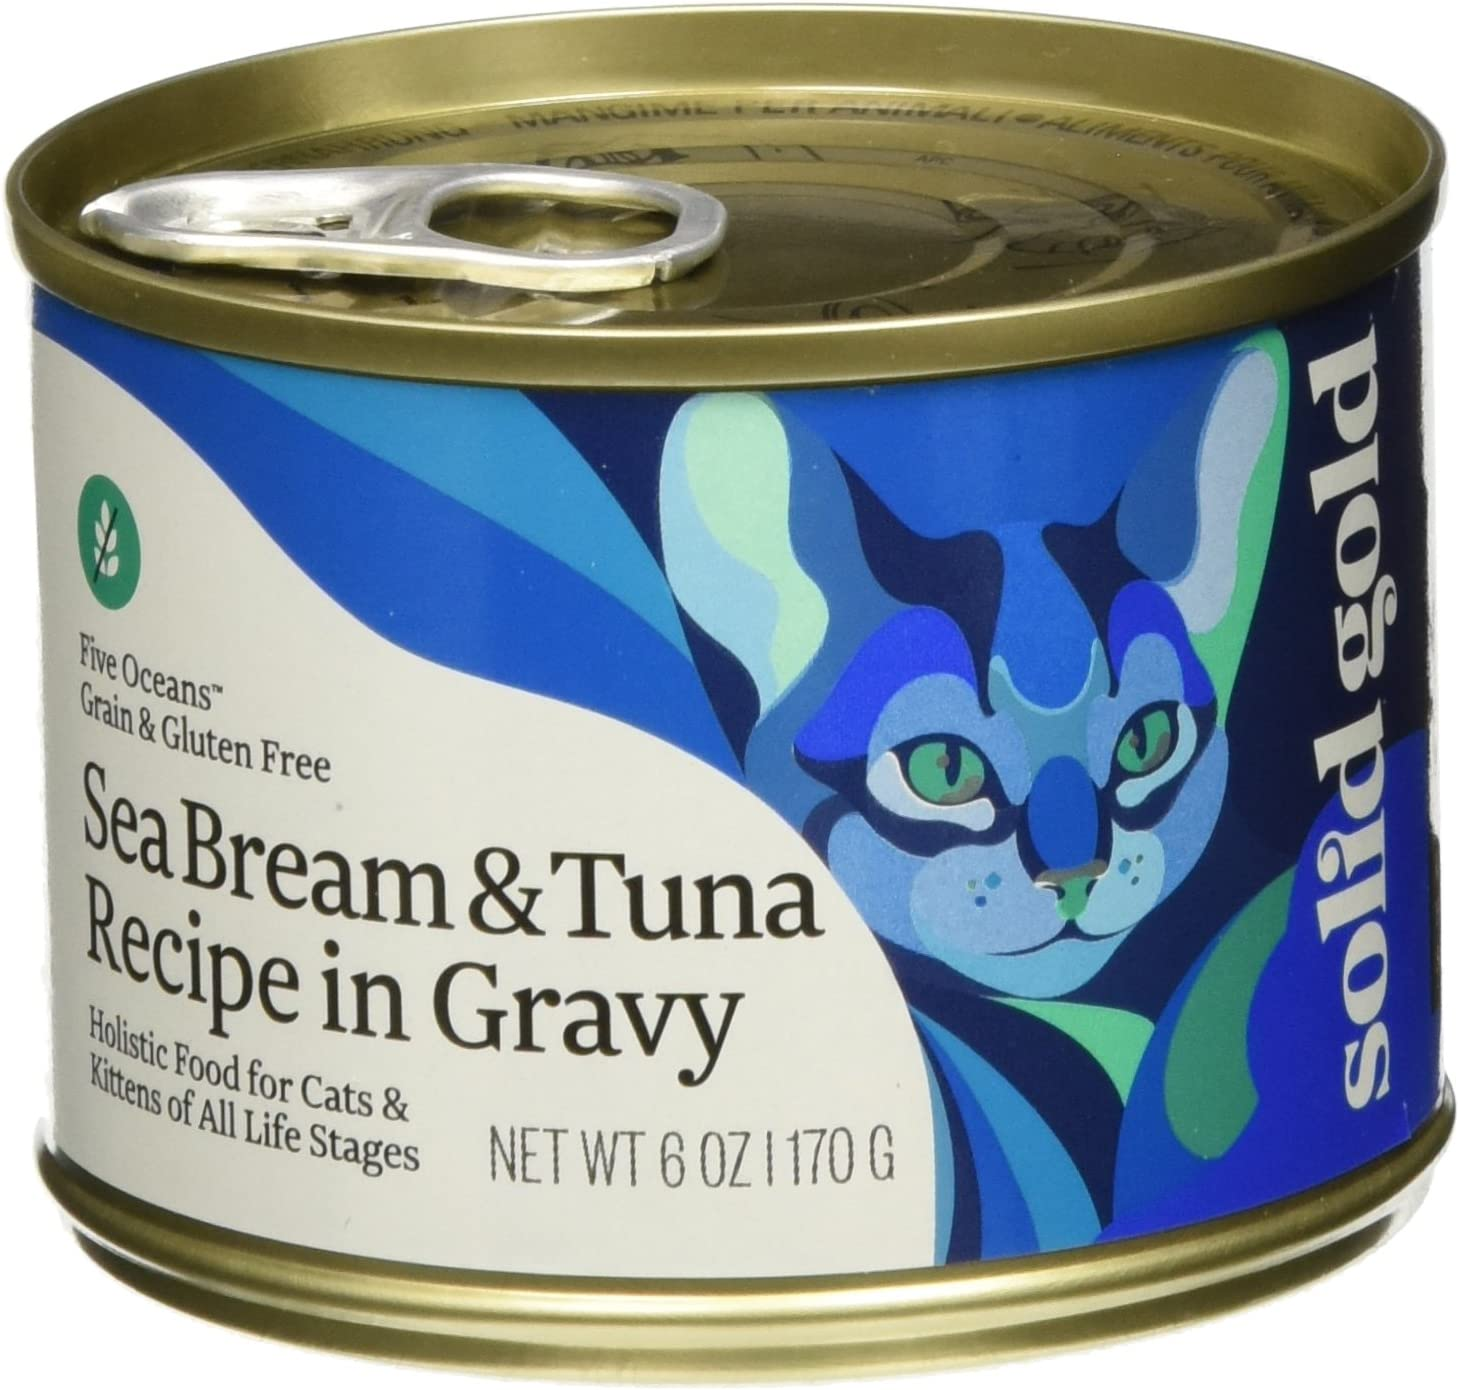 Solid Gold Five Oceans Sea Bream & Tuna Grain Free Canned Cat Food, 6 oz., Case of 8, 8 X 6 OZ